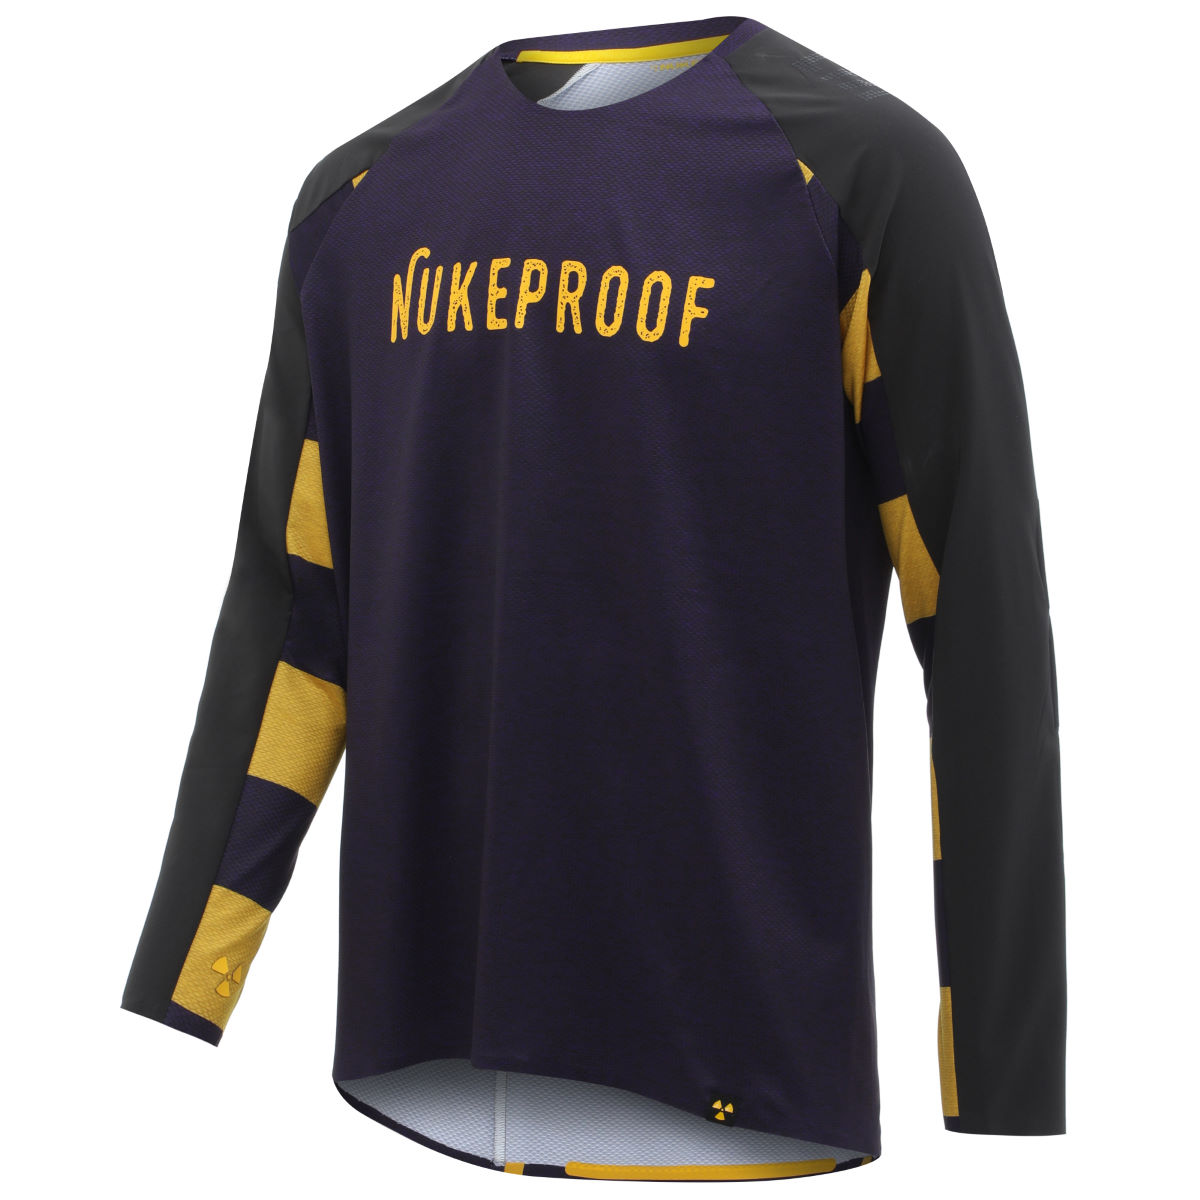 Nukeproof Nukeproof Nirvana Long Sleeve Jersey   Jerseys